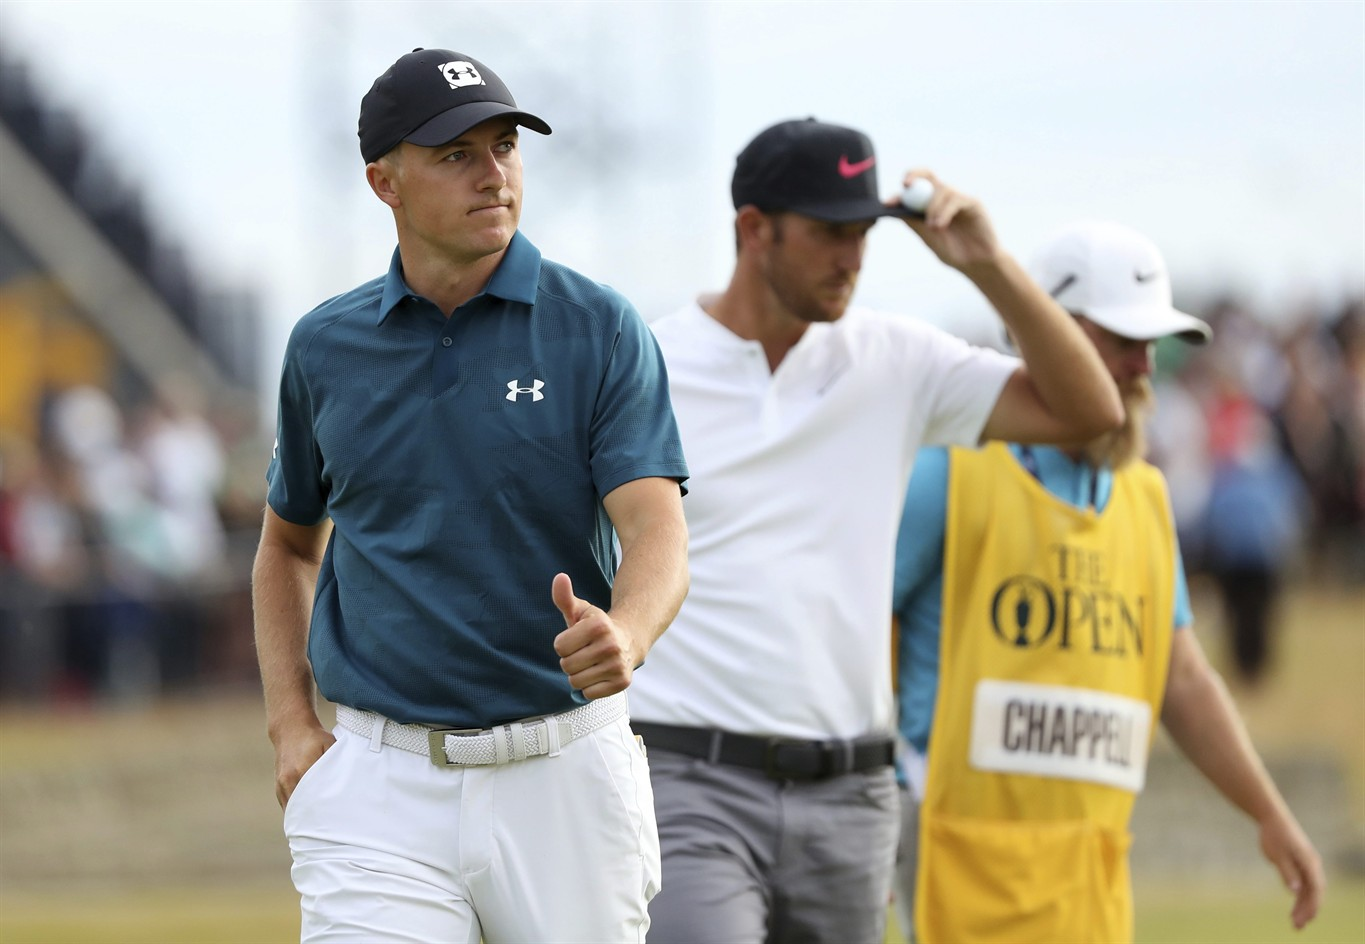 Moving day awaits at British Open